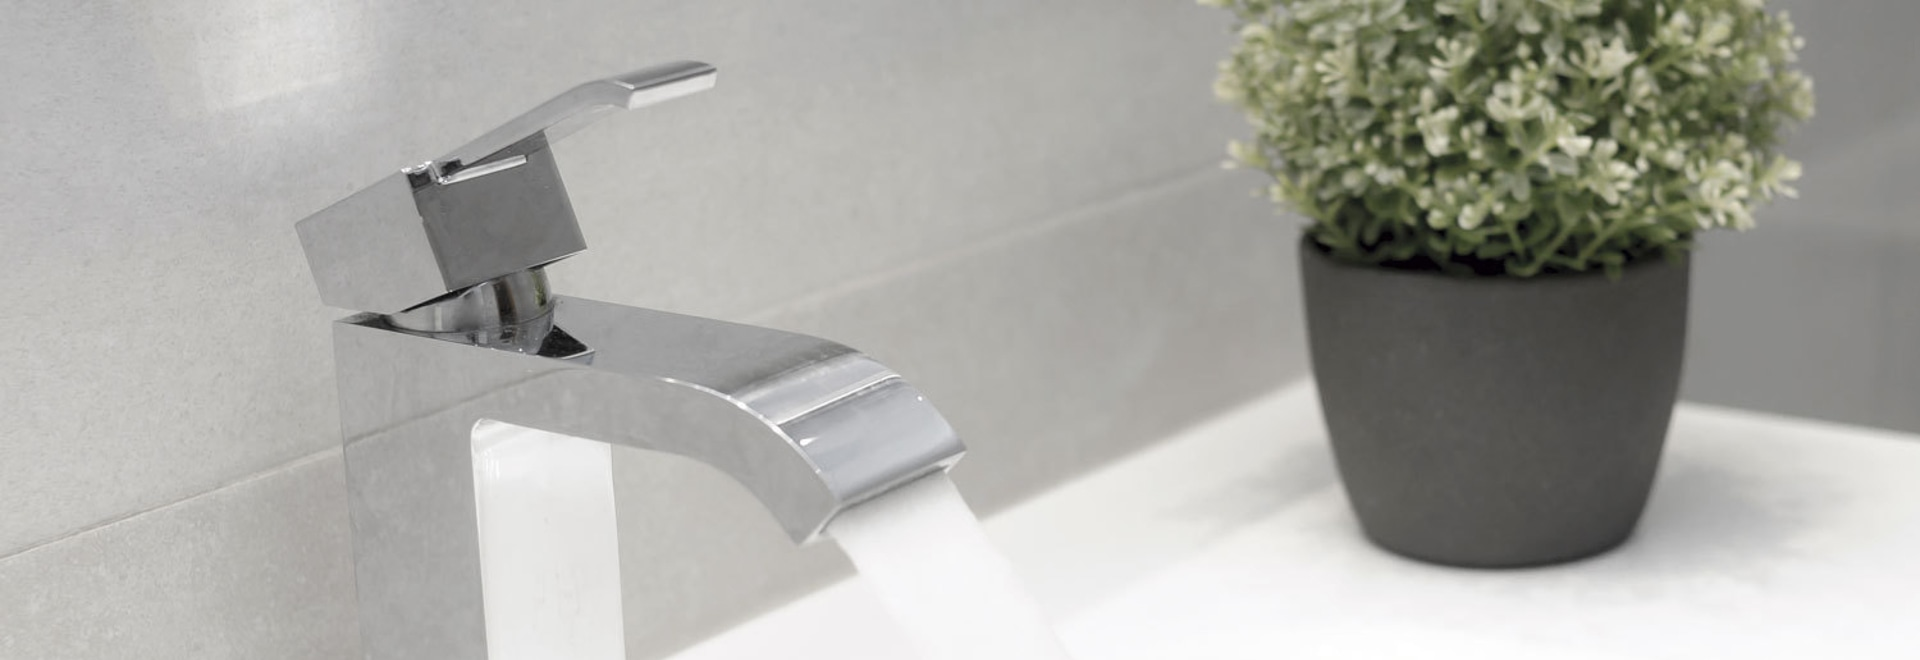 Waterfall faucets | Characteristics and advantages